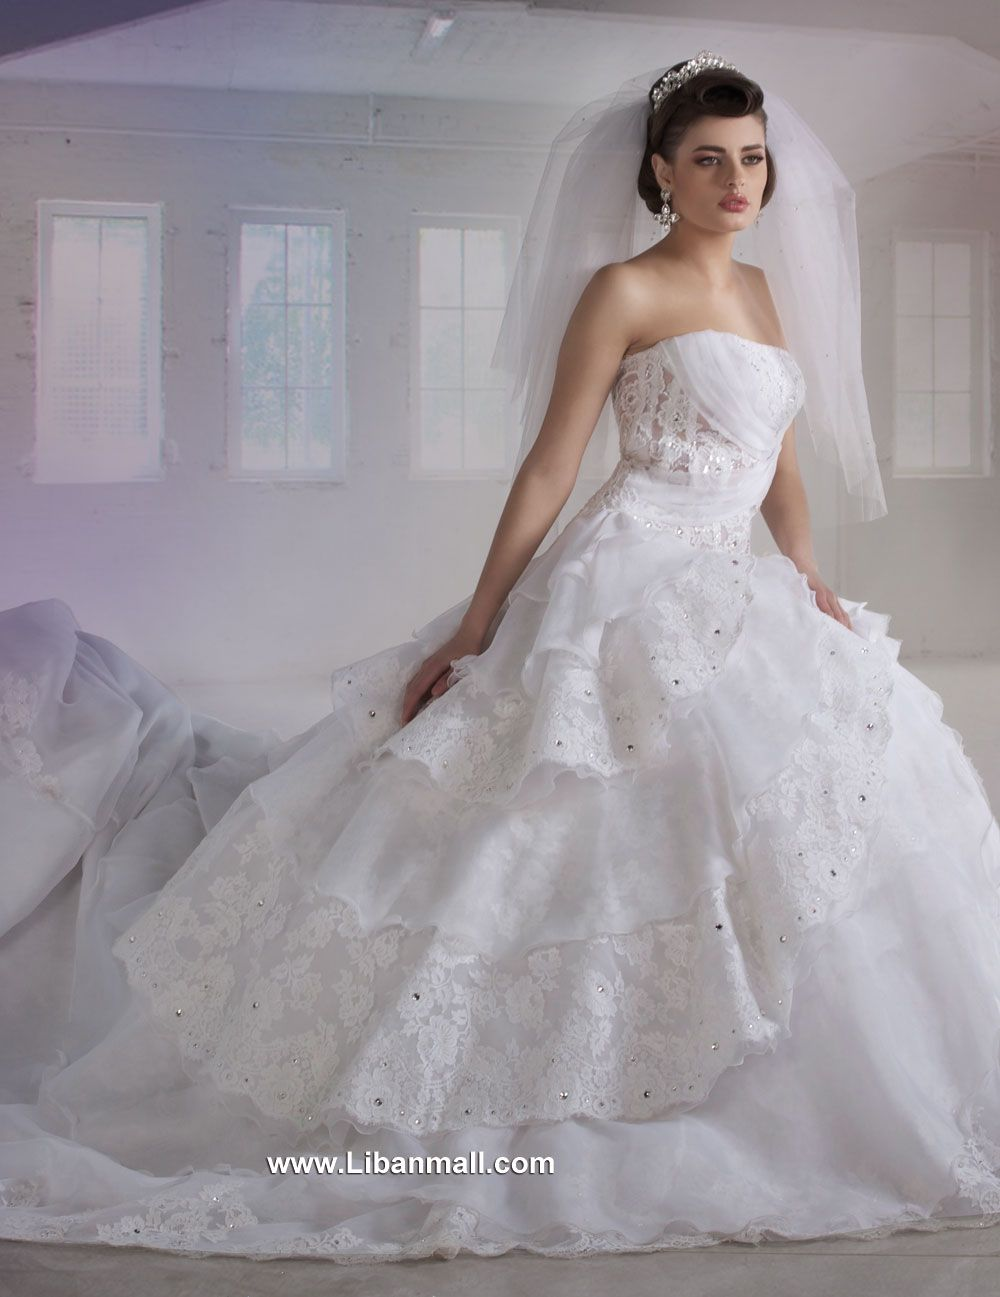 Weddings in lebanon - Wedding Dresses in Lebanon - Khairieh Mahfouz ...